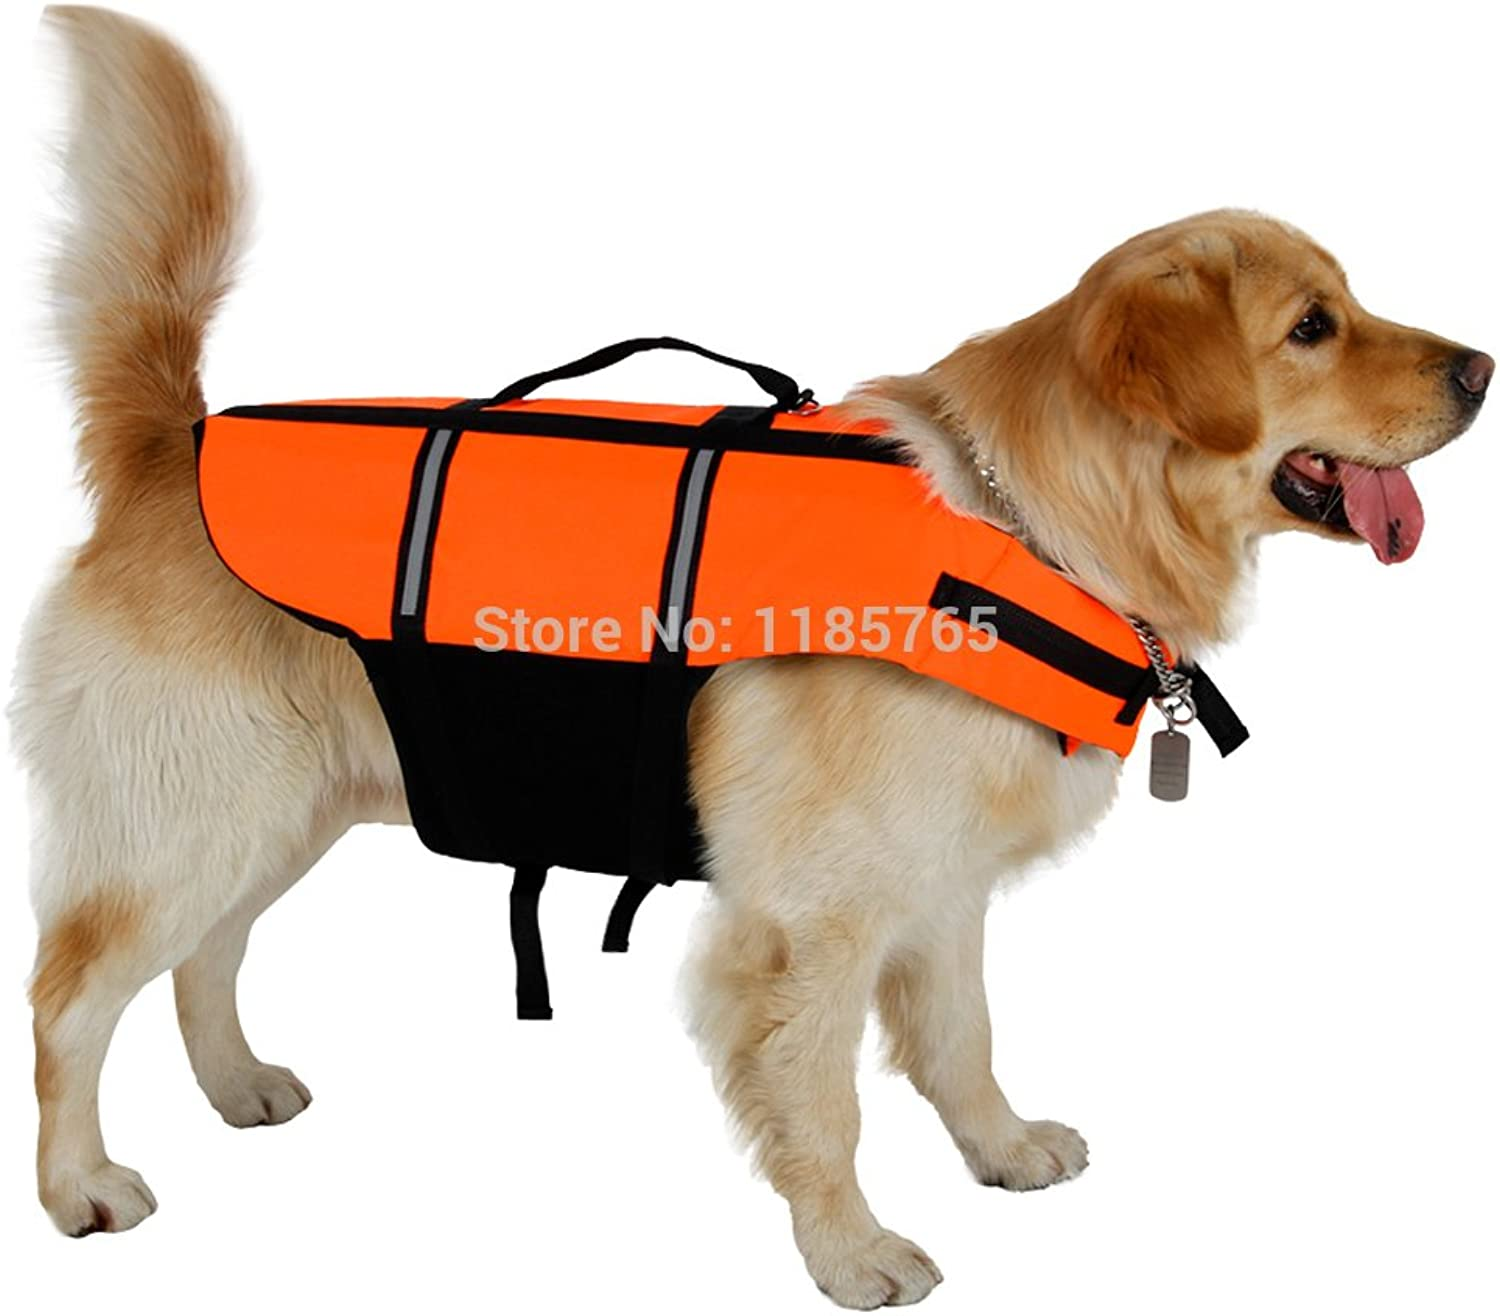 Sciotex£¨TM£ New Arrival Pet Reflective Life Jacket Dog Cat Puppy Vest For Swimming Training For Safety Pet Supplies S3XL